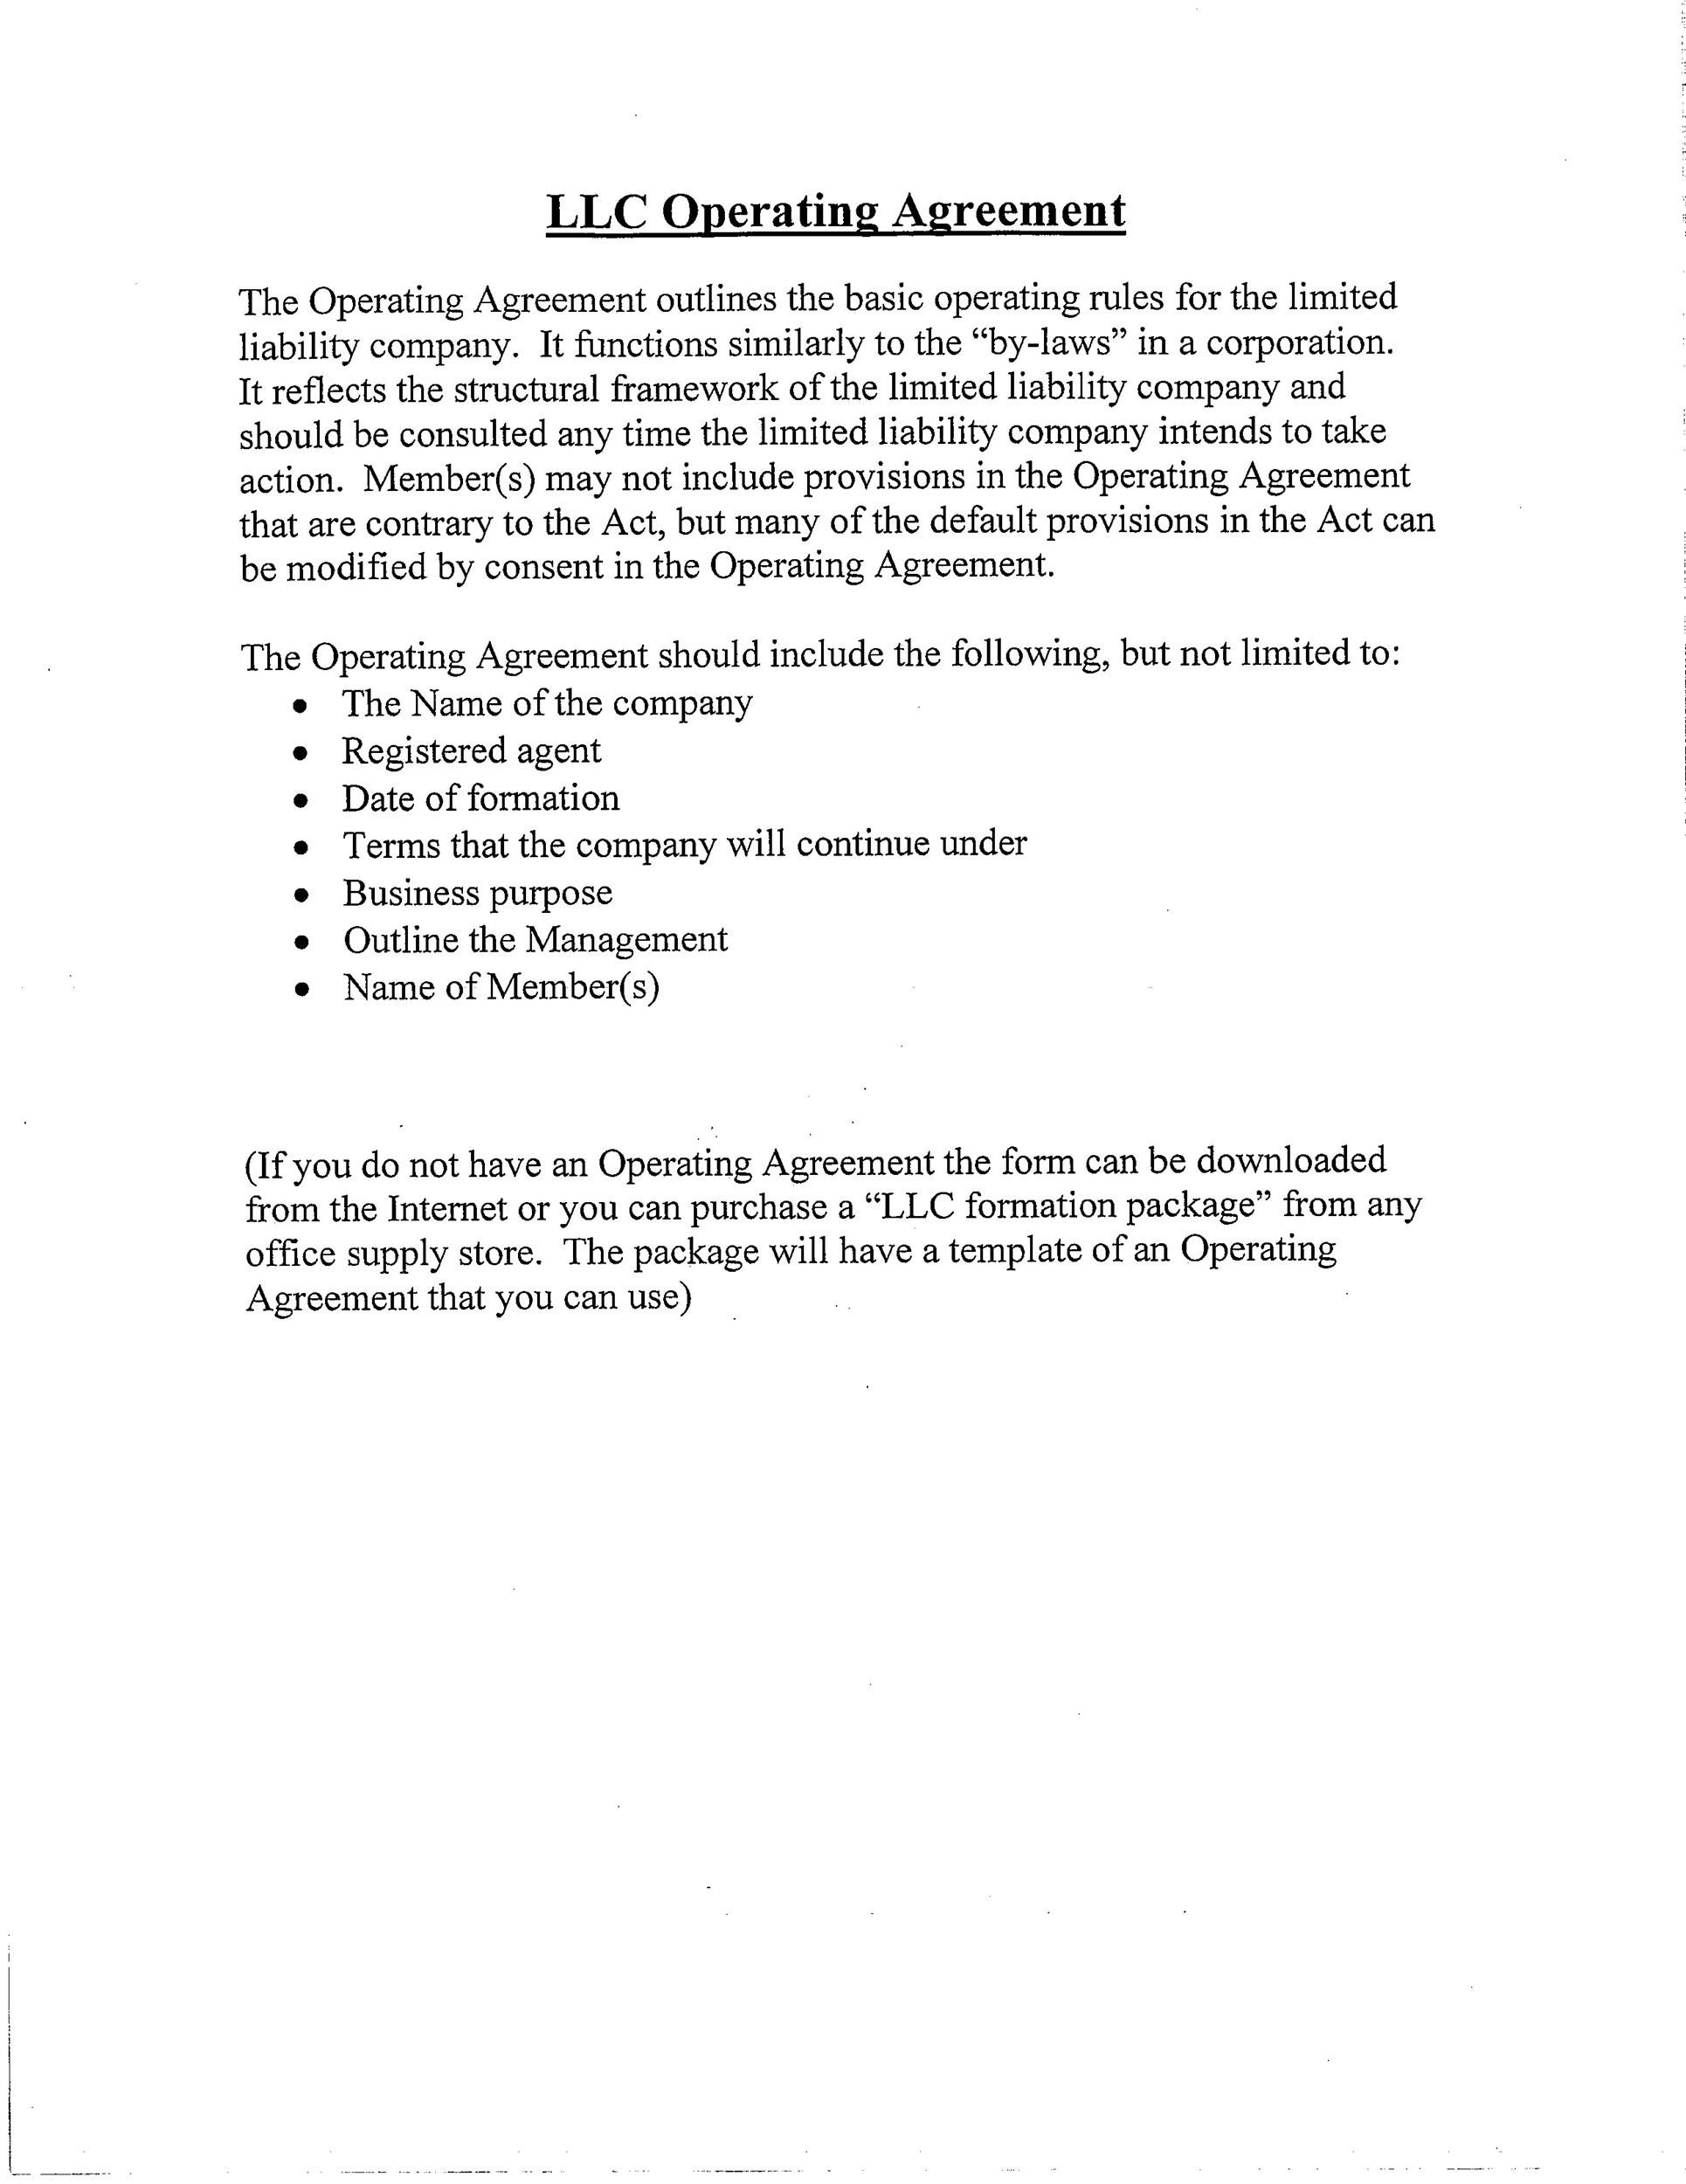 Free llc operating agreement template 19